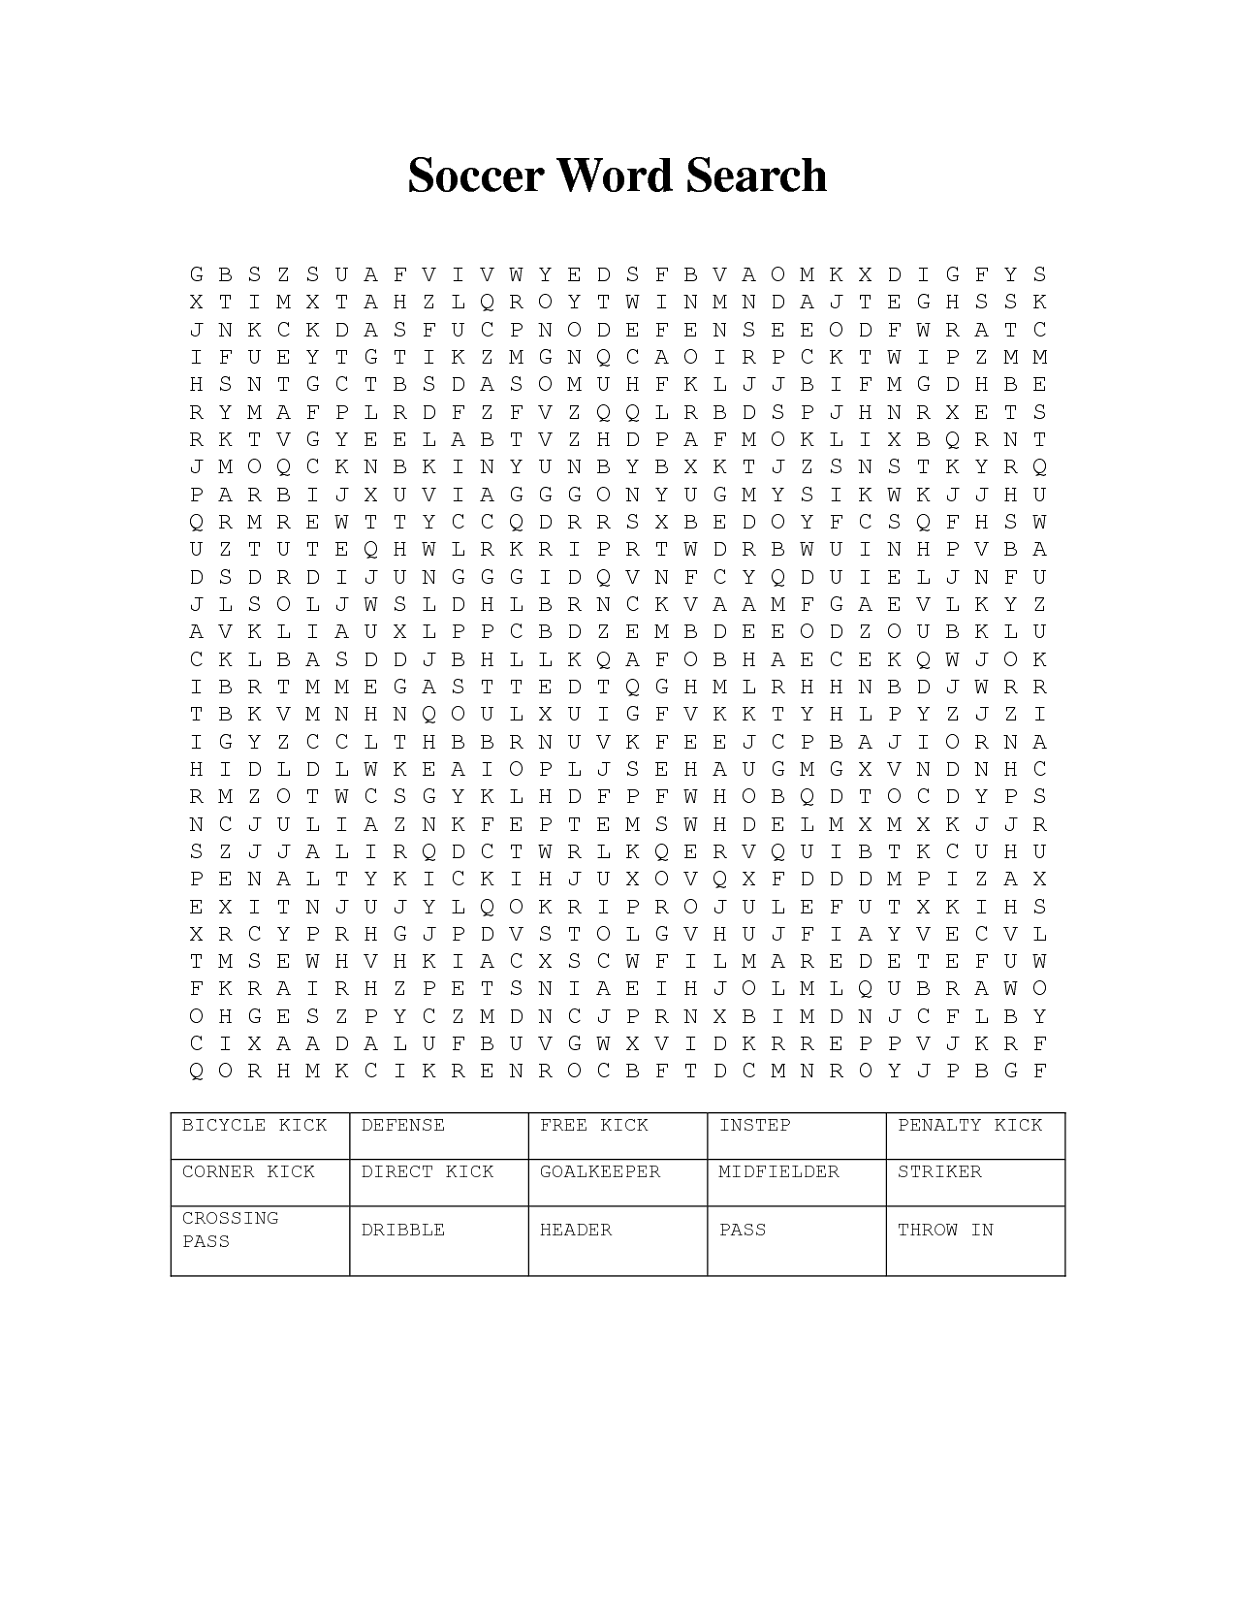 soccer-word-search-free